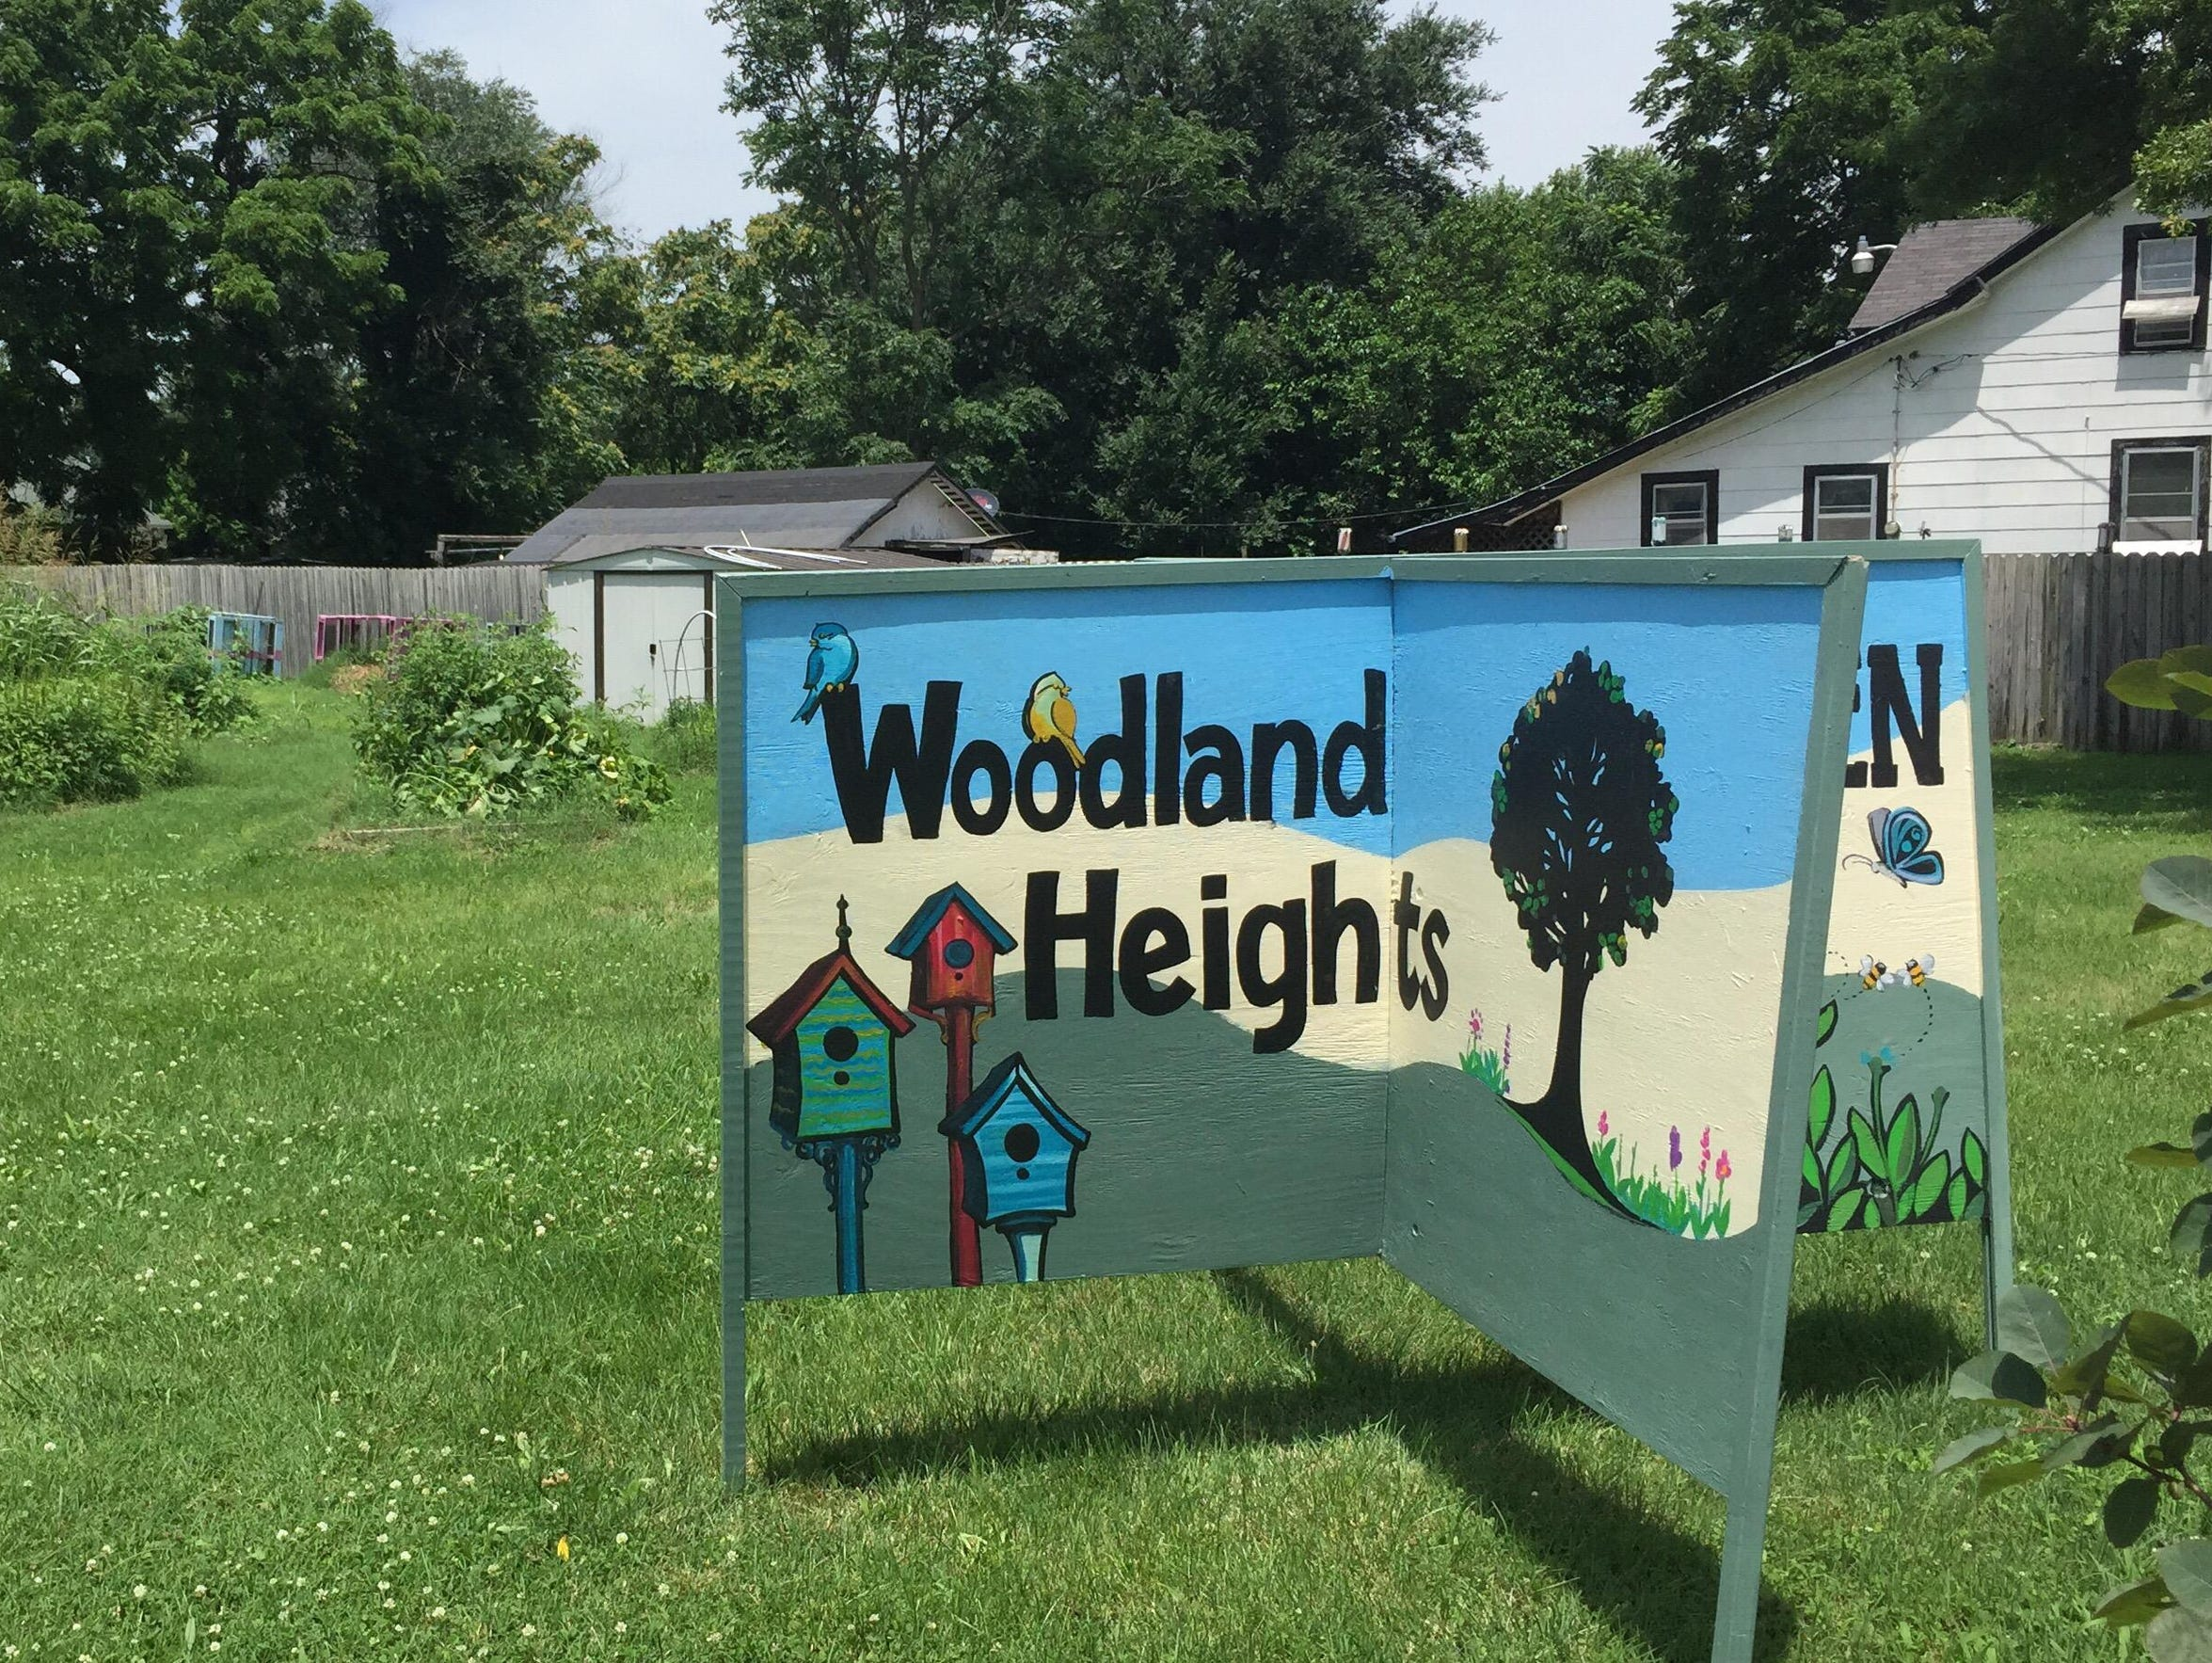 The Woodland Heights neighborhood has started a community